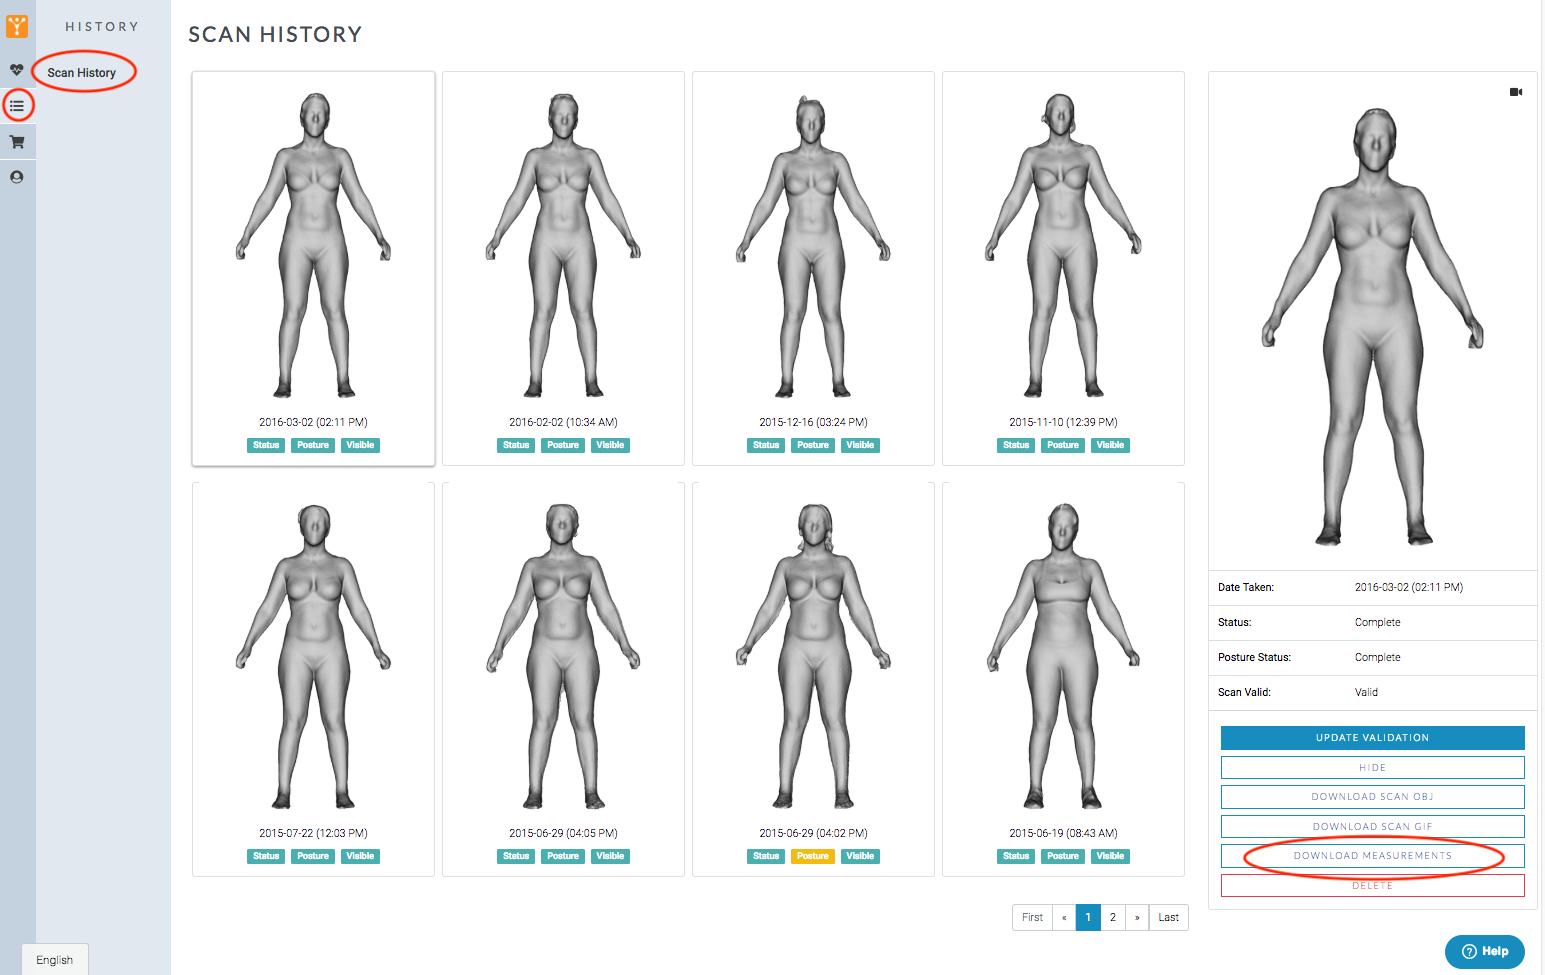 - SEE PROGRESS RIGHT BEFORE YOUR EYES…Repeat the FIT 3D scan to compare your measurements & assess where you are seeing progressFrom building muscle to losing weight, the 3D scans tell you how your body is changing with your health & fitness routine